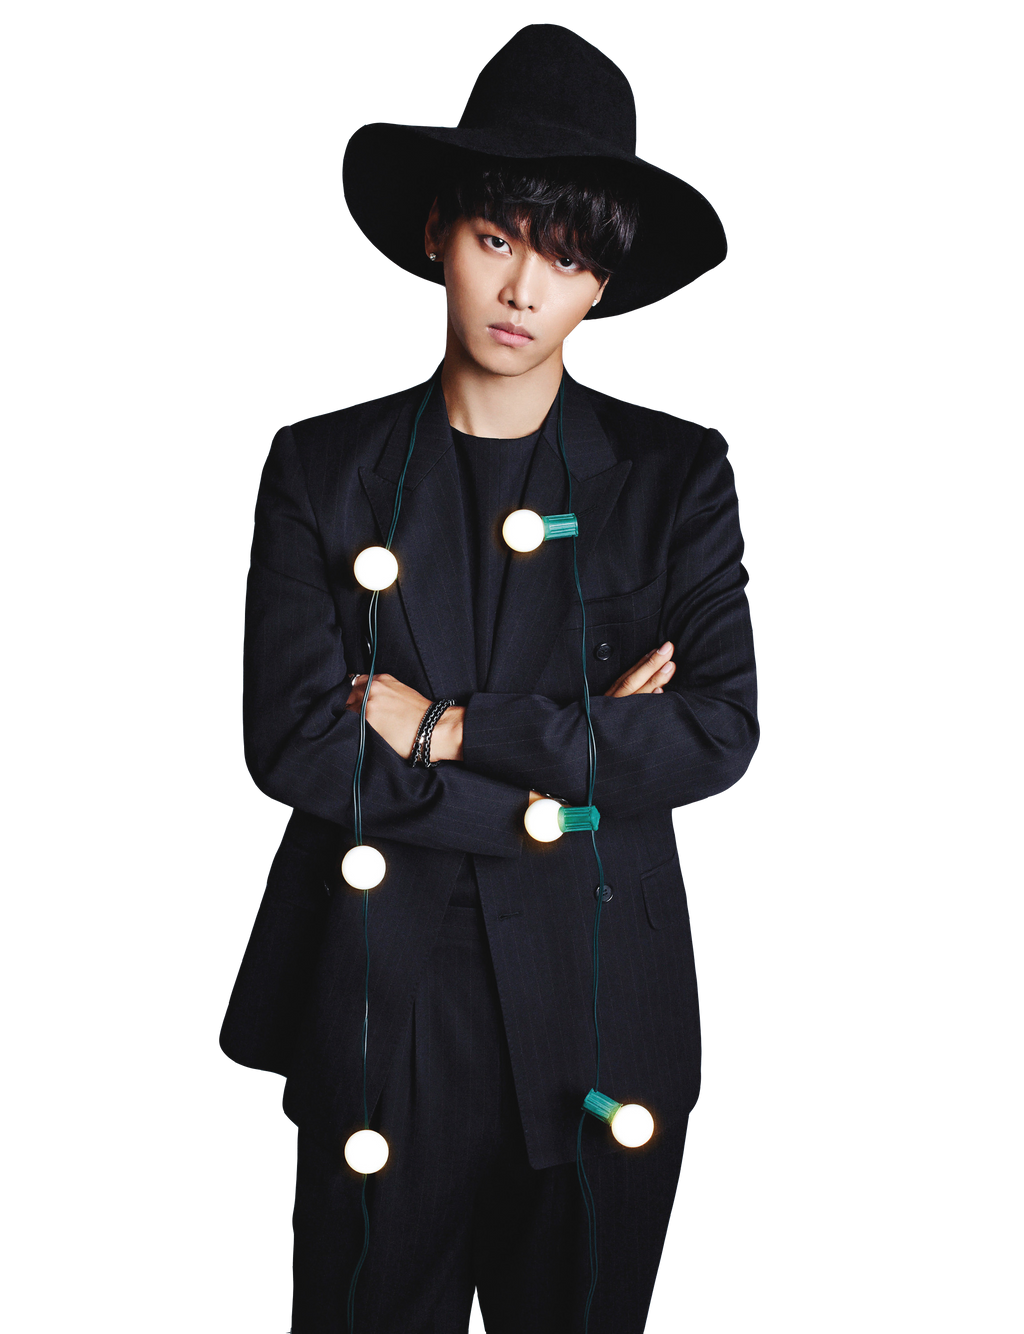 N (VIXX) [png] #1 by KseniaKang on DeviantArt